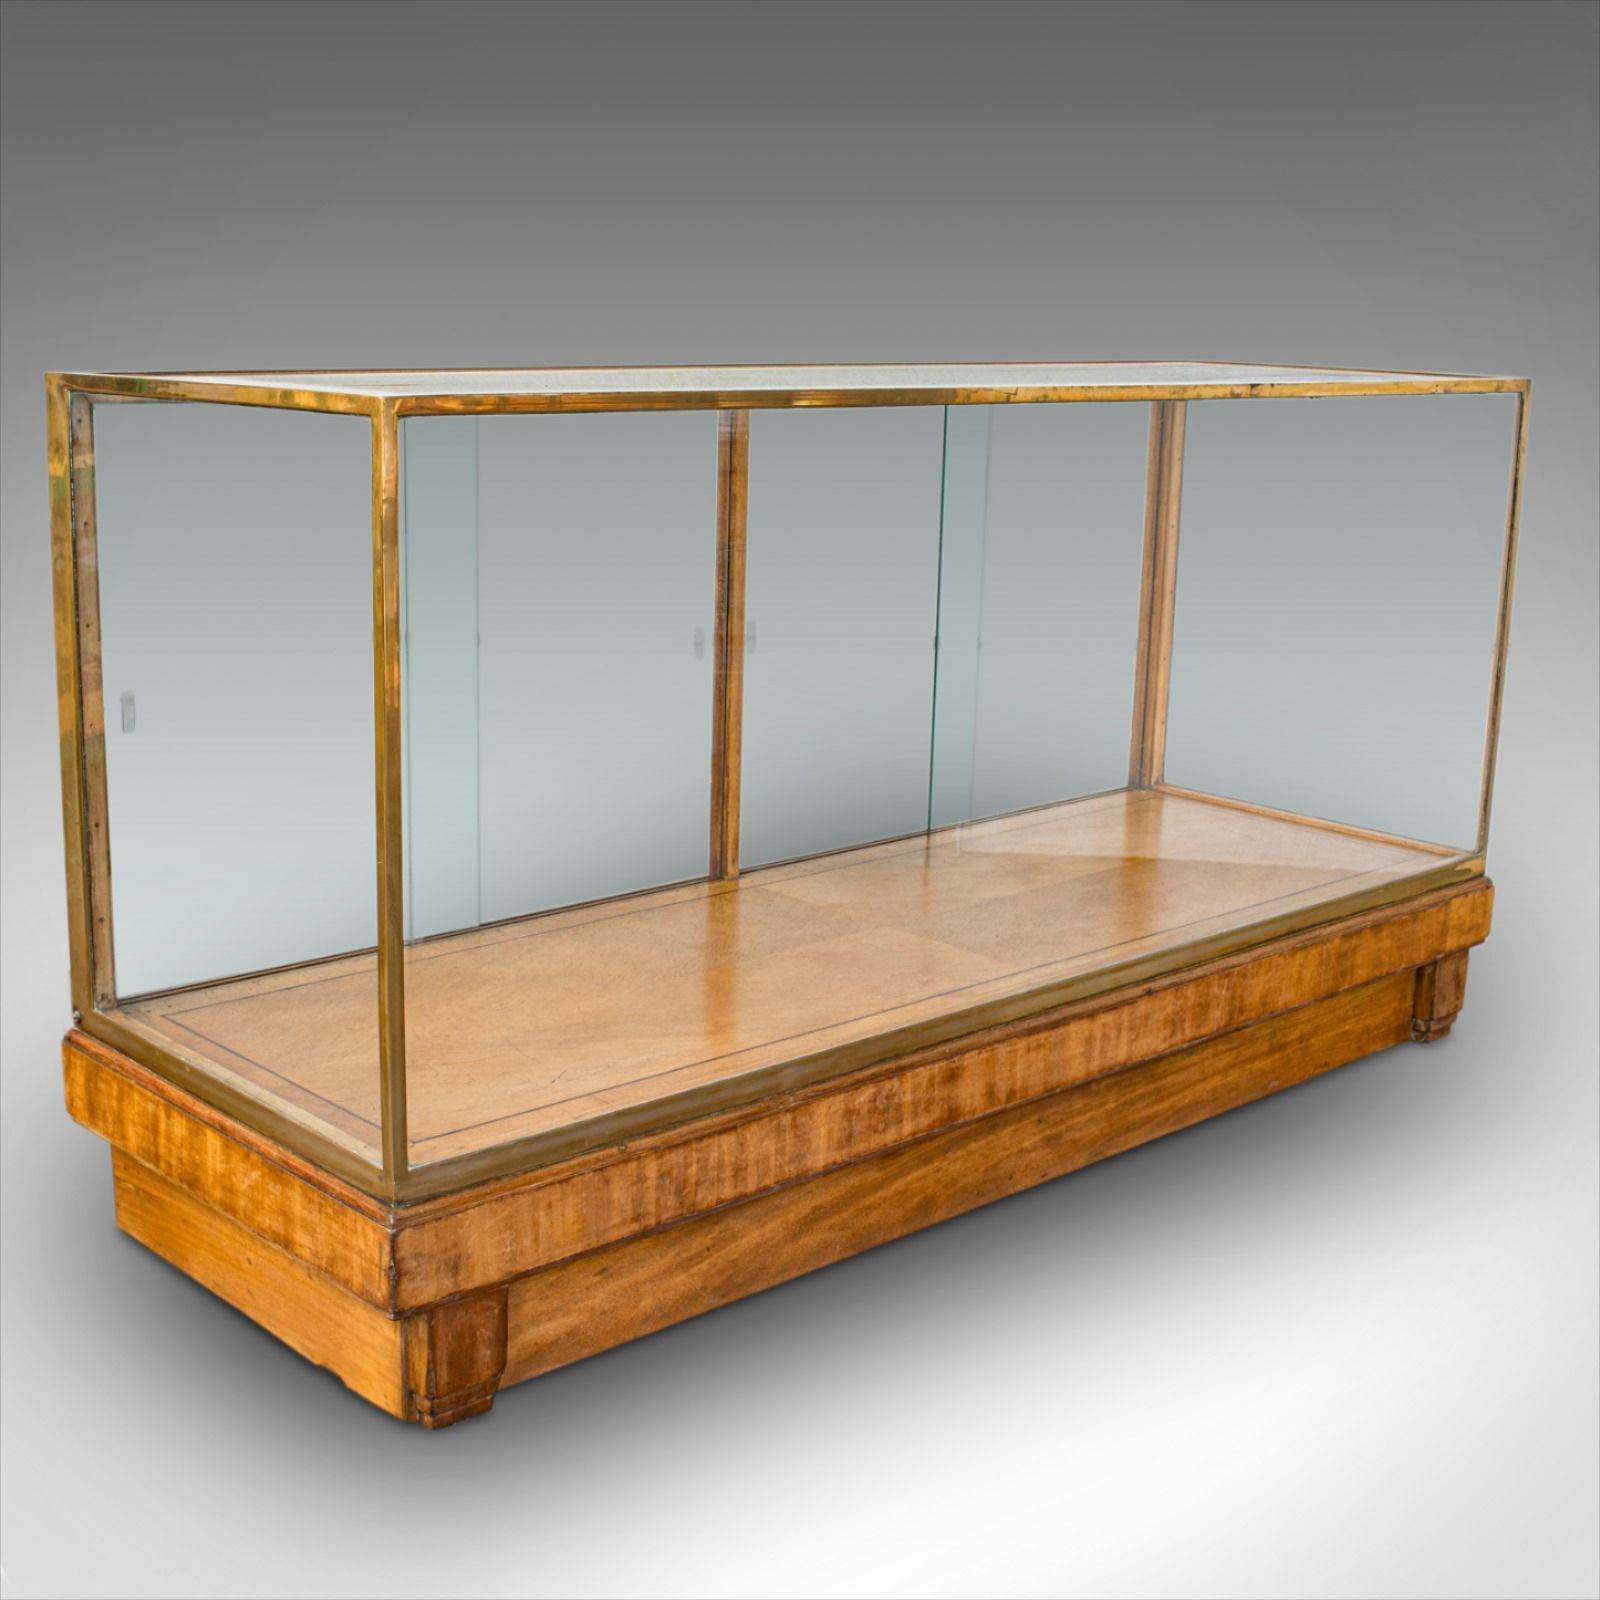 Antique Glass Shopfitting Cabinet, English, Bronze, Retail